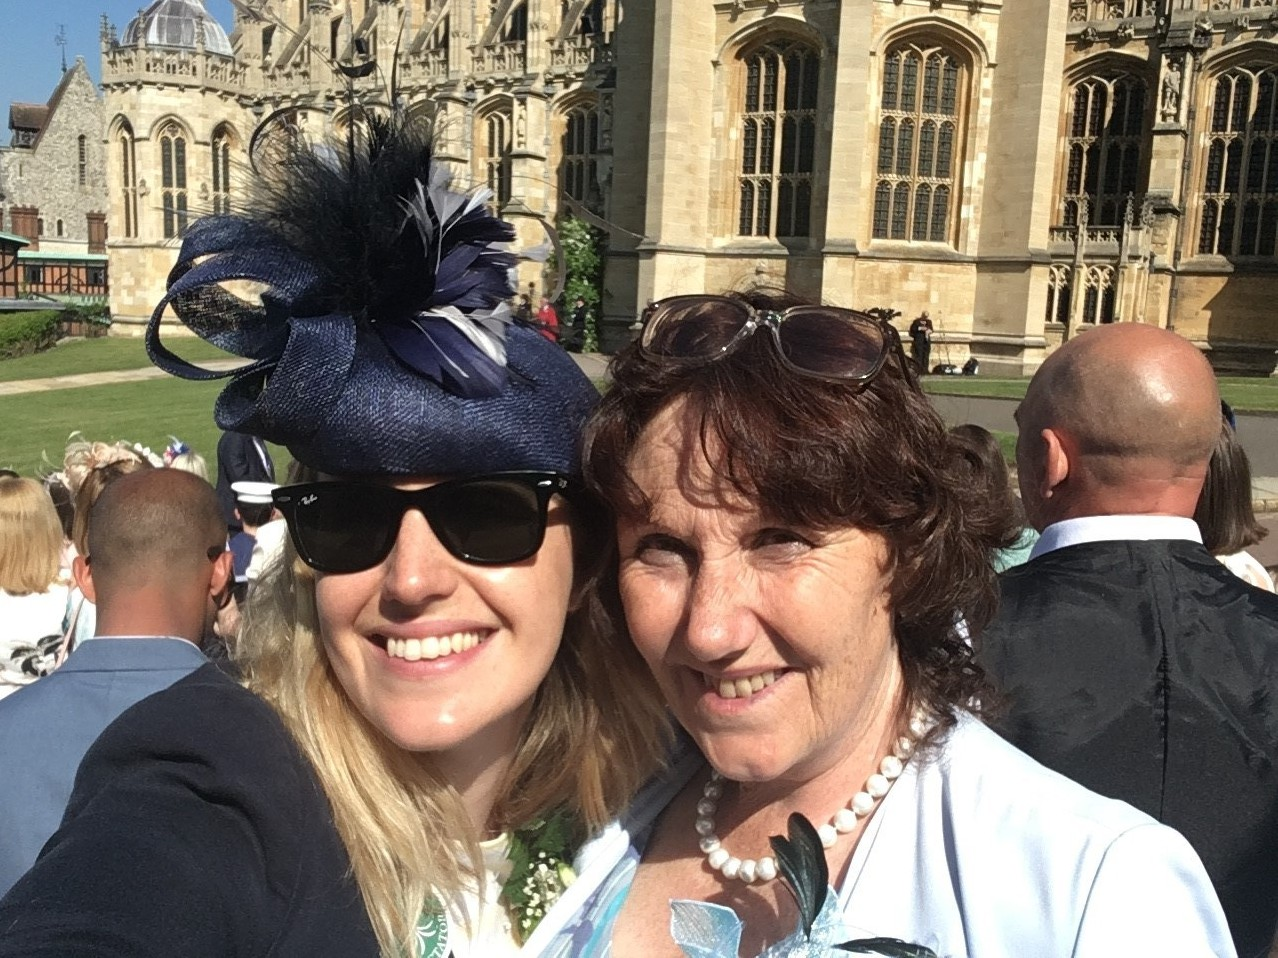 Deborah King and her duaghter Stephanie at the royal wedding in Windsor.